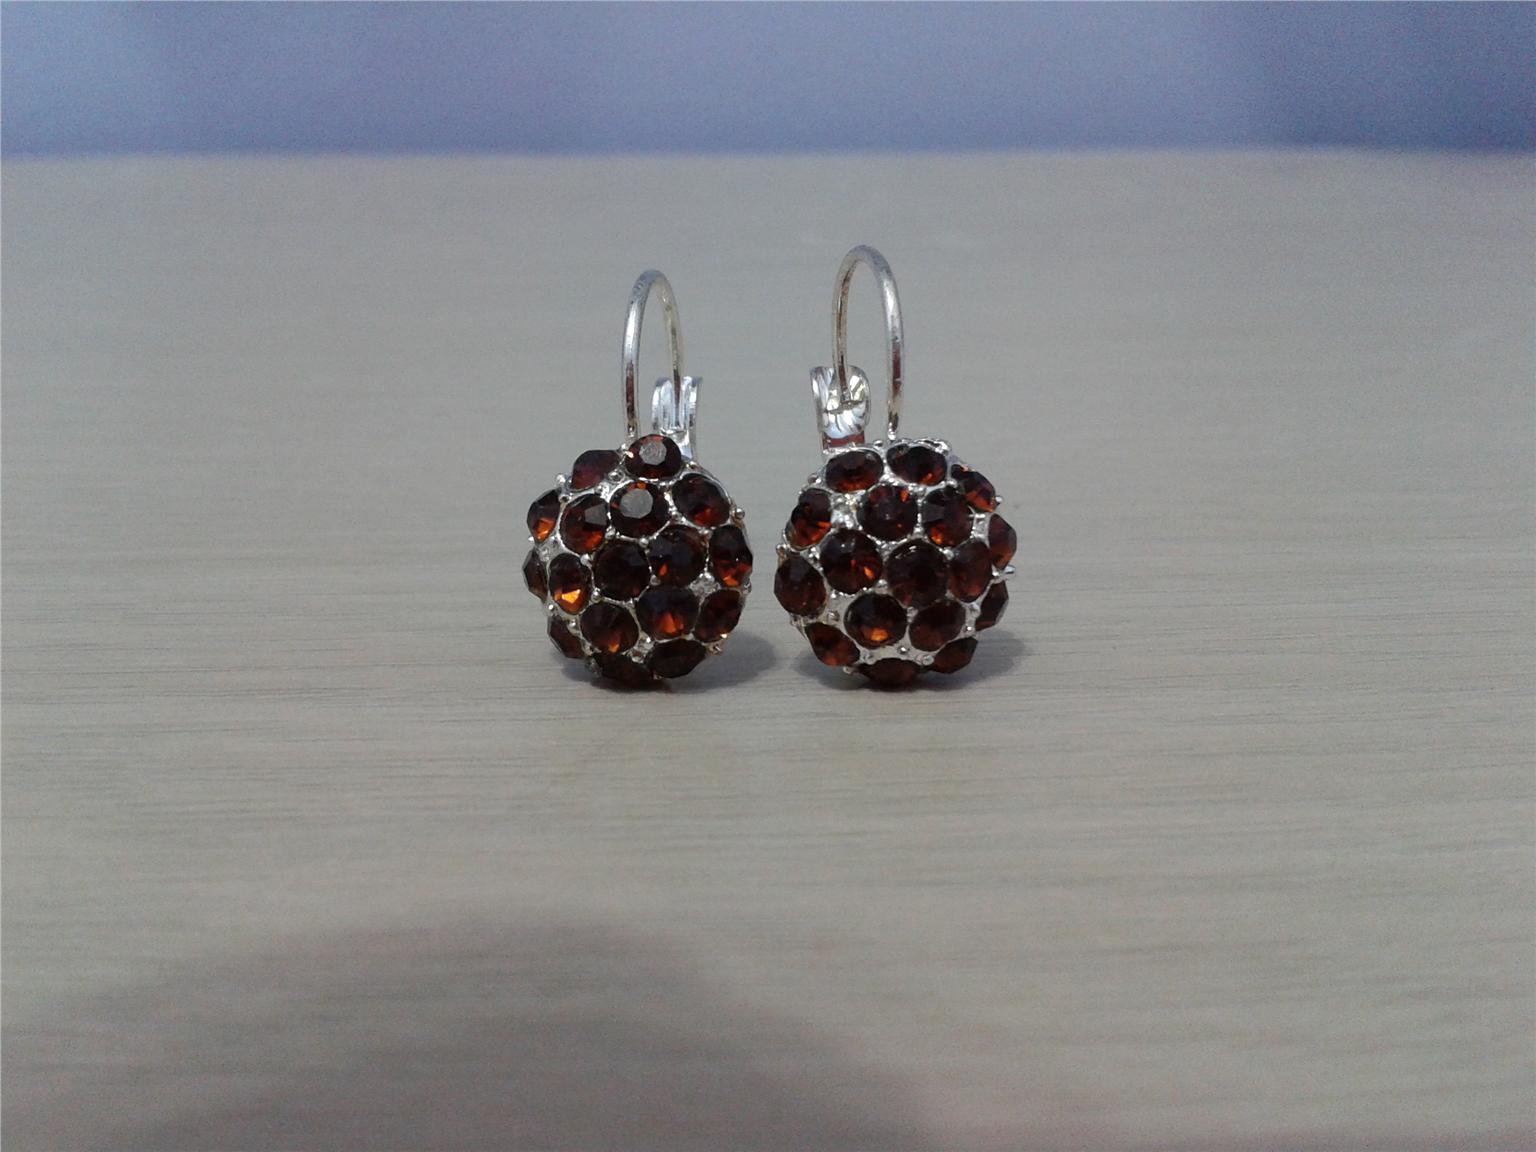 EARRINGS - RHINESTONE EARRINGS DARK BROWN